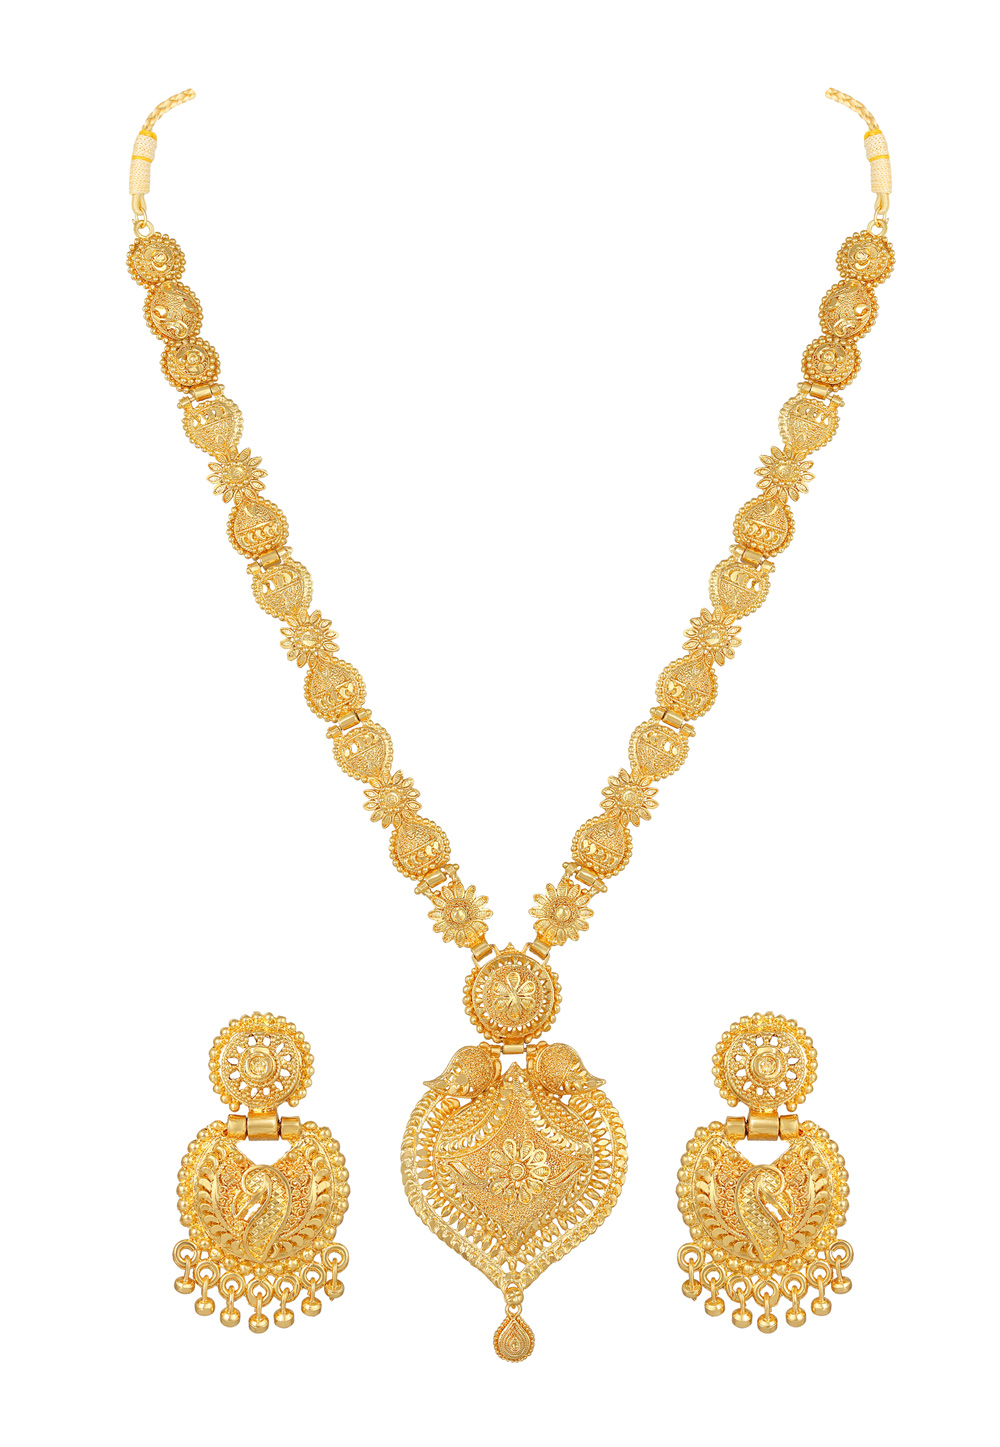 Golden Alloy Necklace Set With Earrings 191981